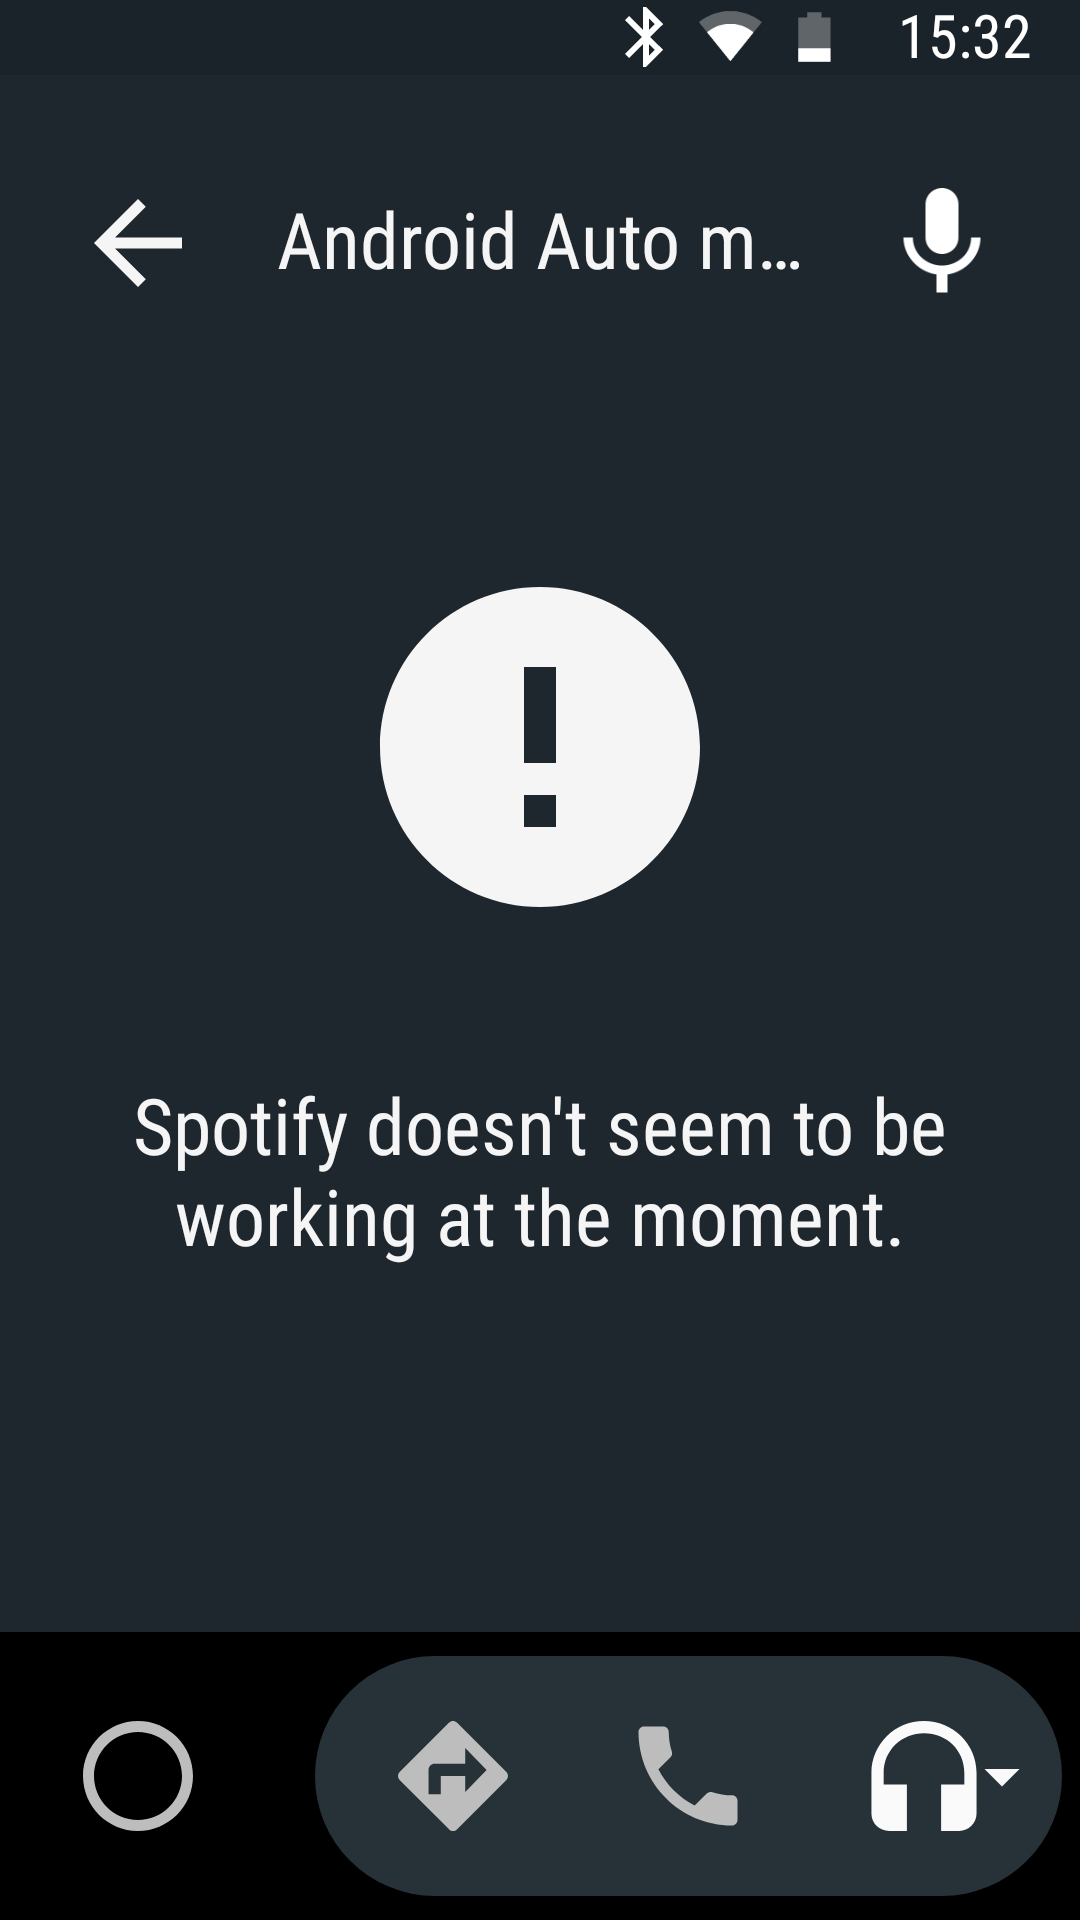 Android Auto - Spotify doesn't play offline - The Spotify Community